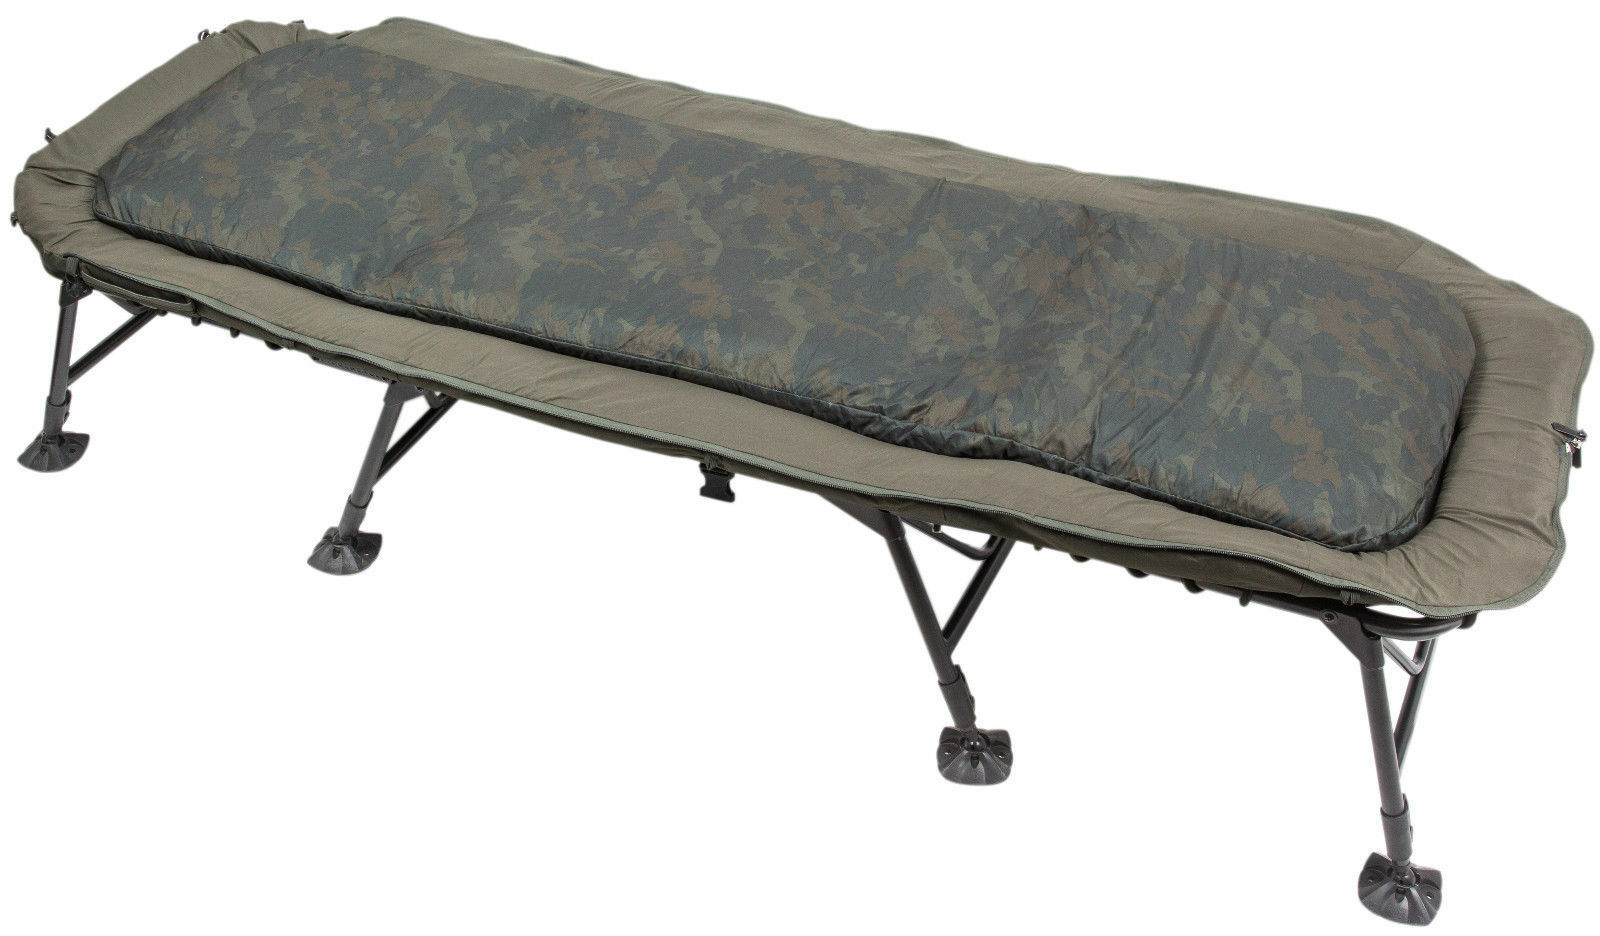 nash fishing chair accessories desk for tall person indulgence bedchair mattress sheets only all sizes